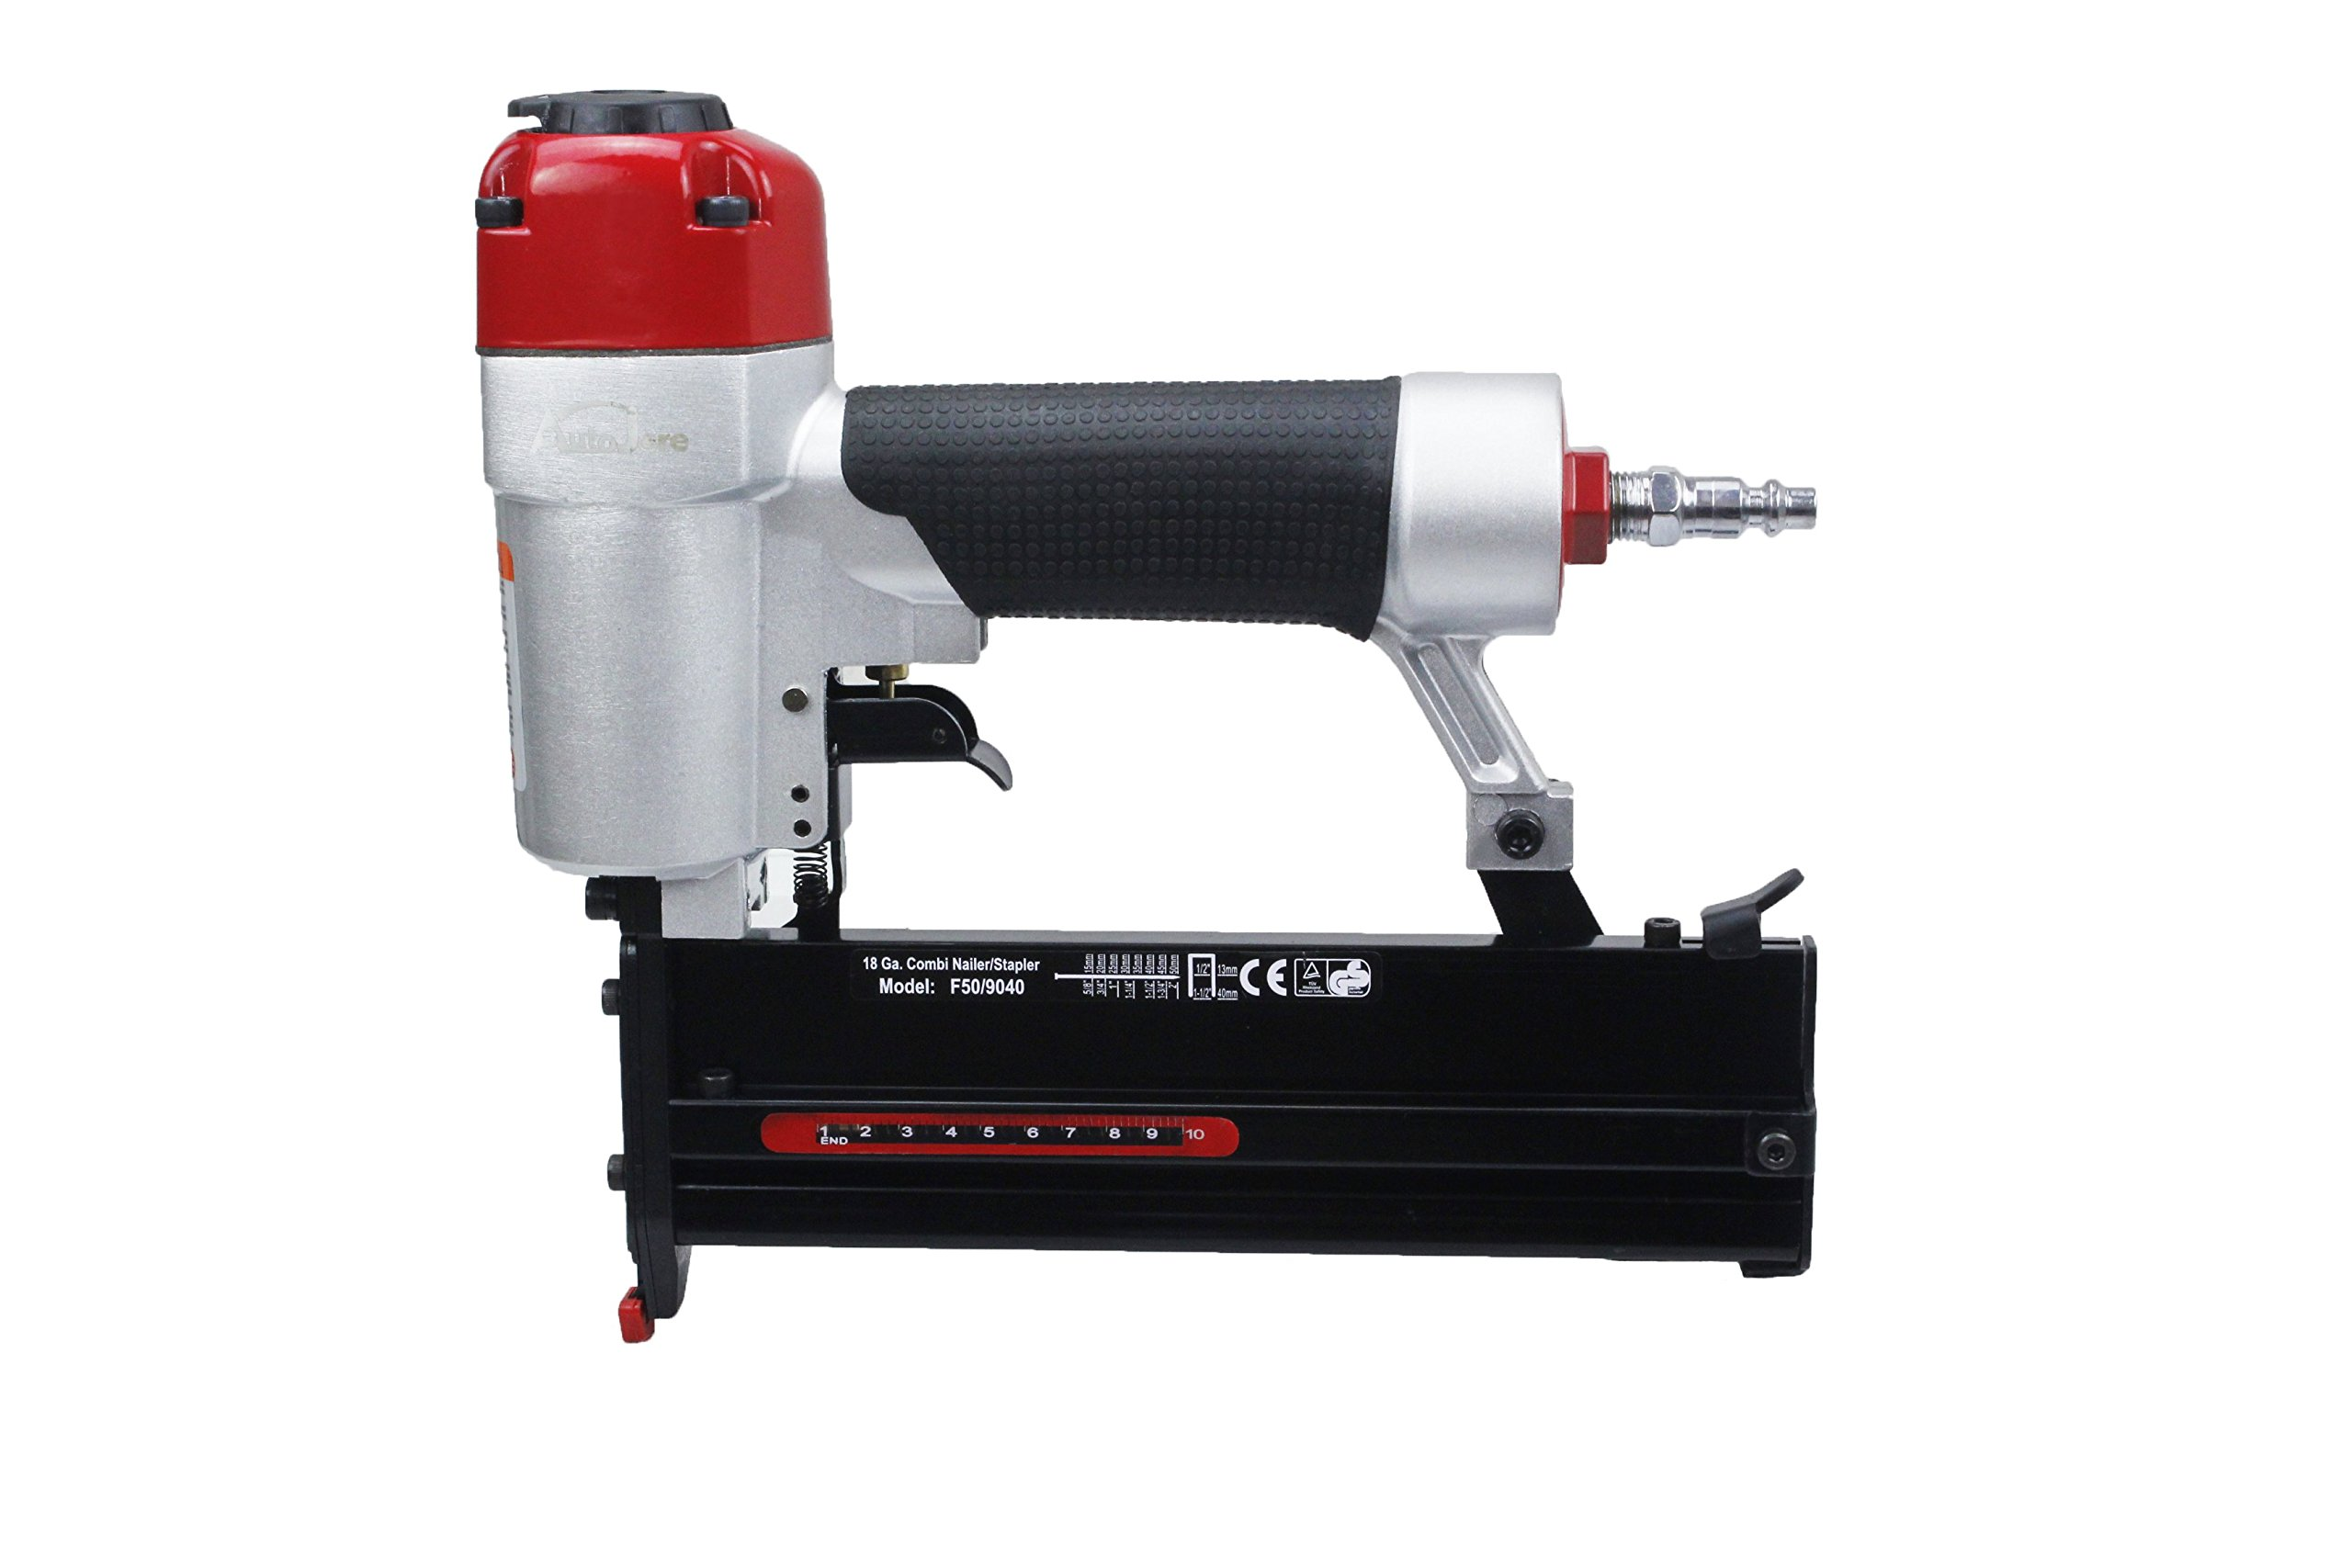 Brad Nailer & Air Stapler AUTOJARE 18 Gauge 2 in 1 Pneumatic Stapler/air gun